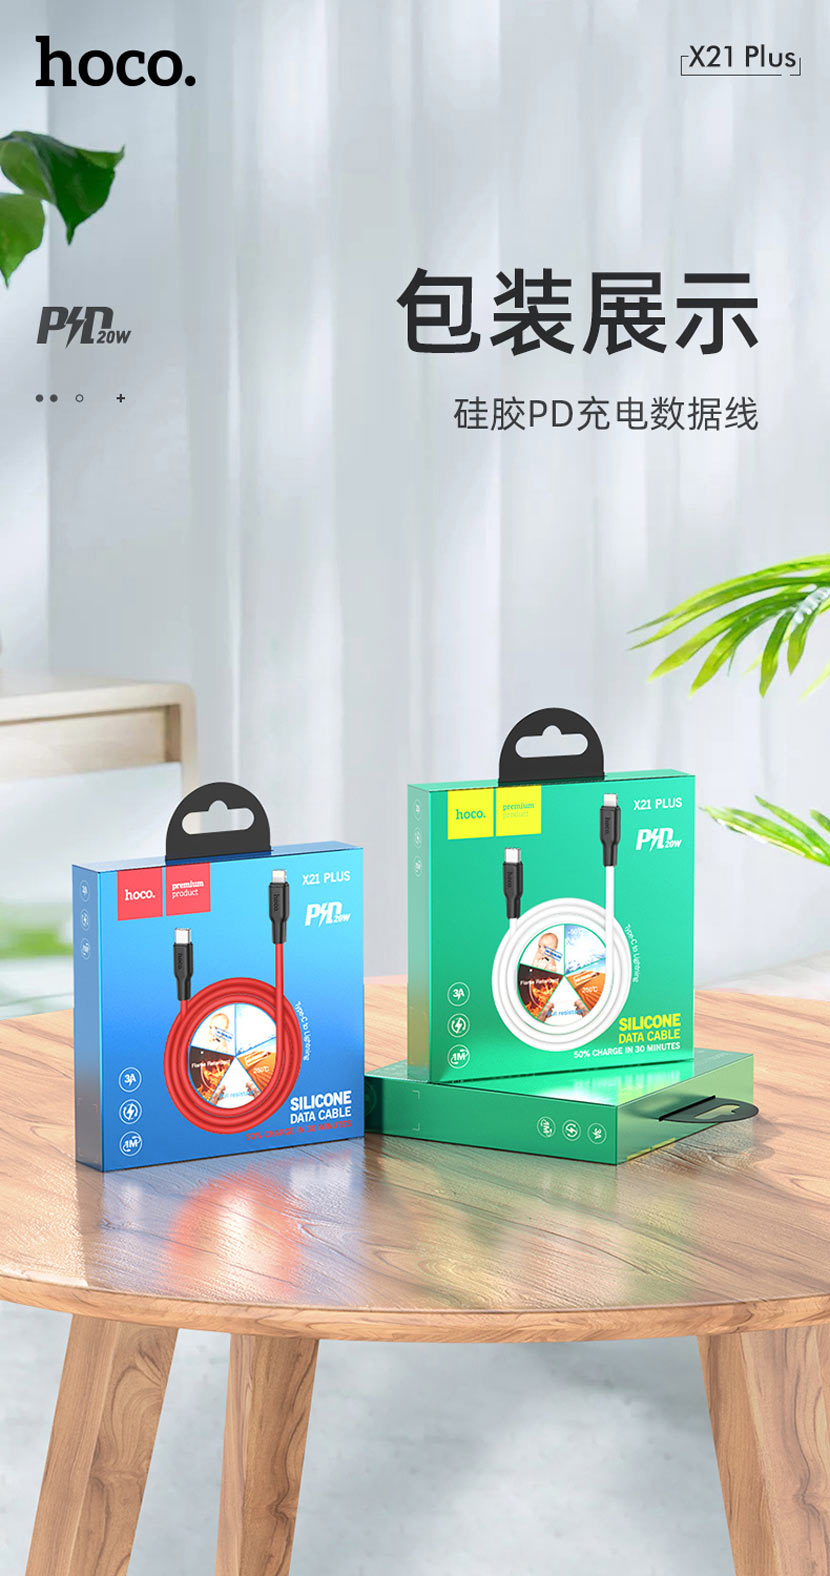 hoco news x21 plus silicone pd charging data cable package cn